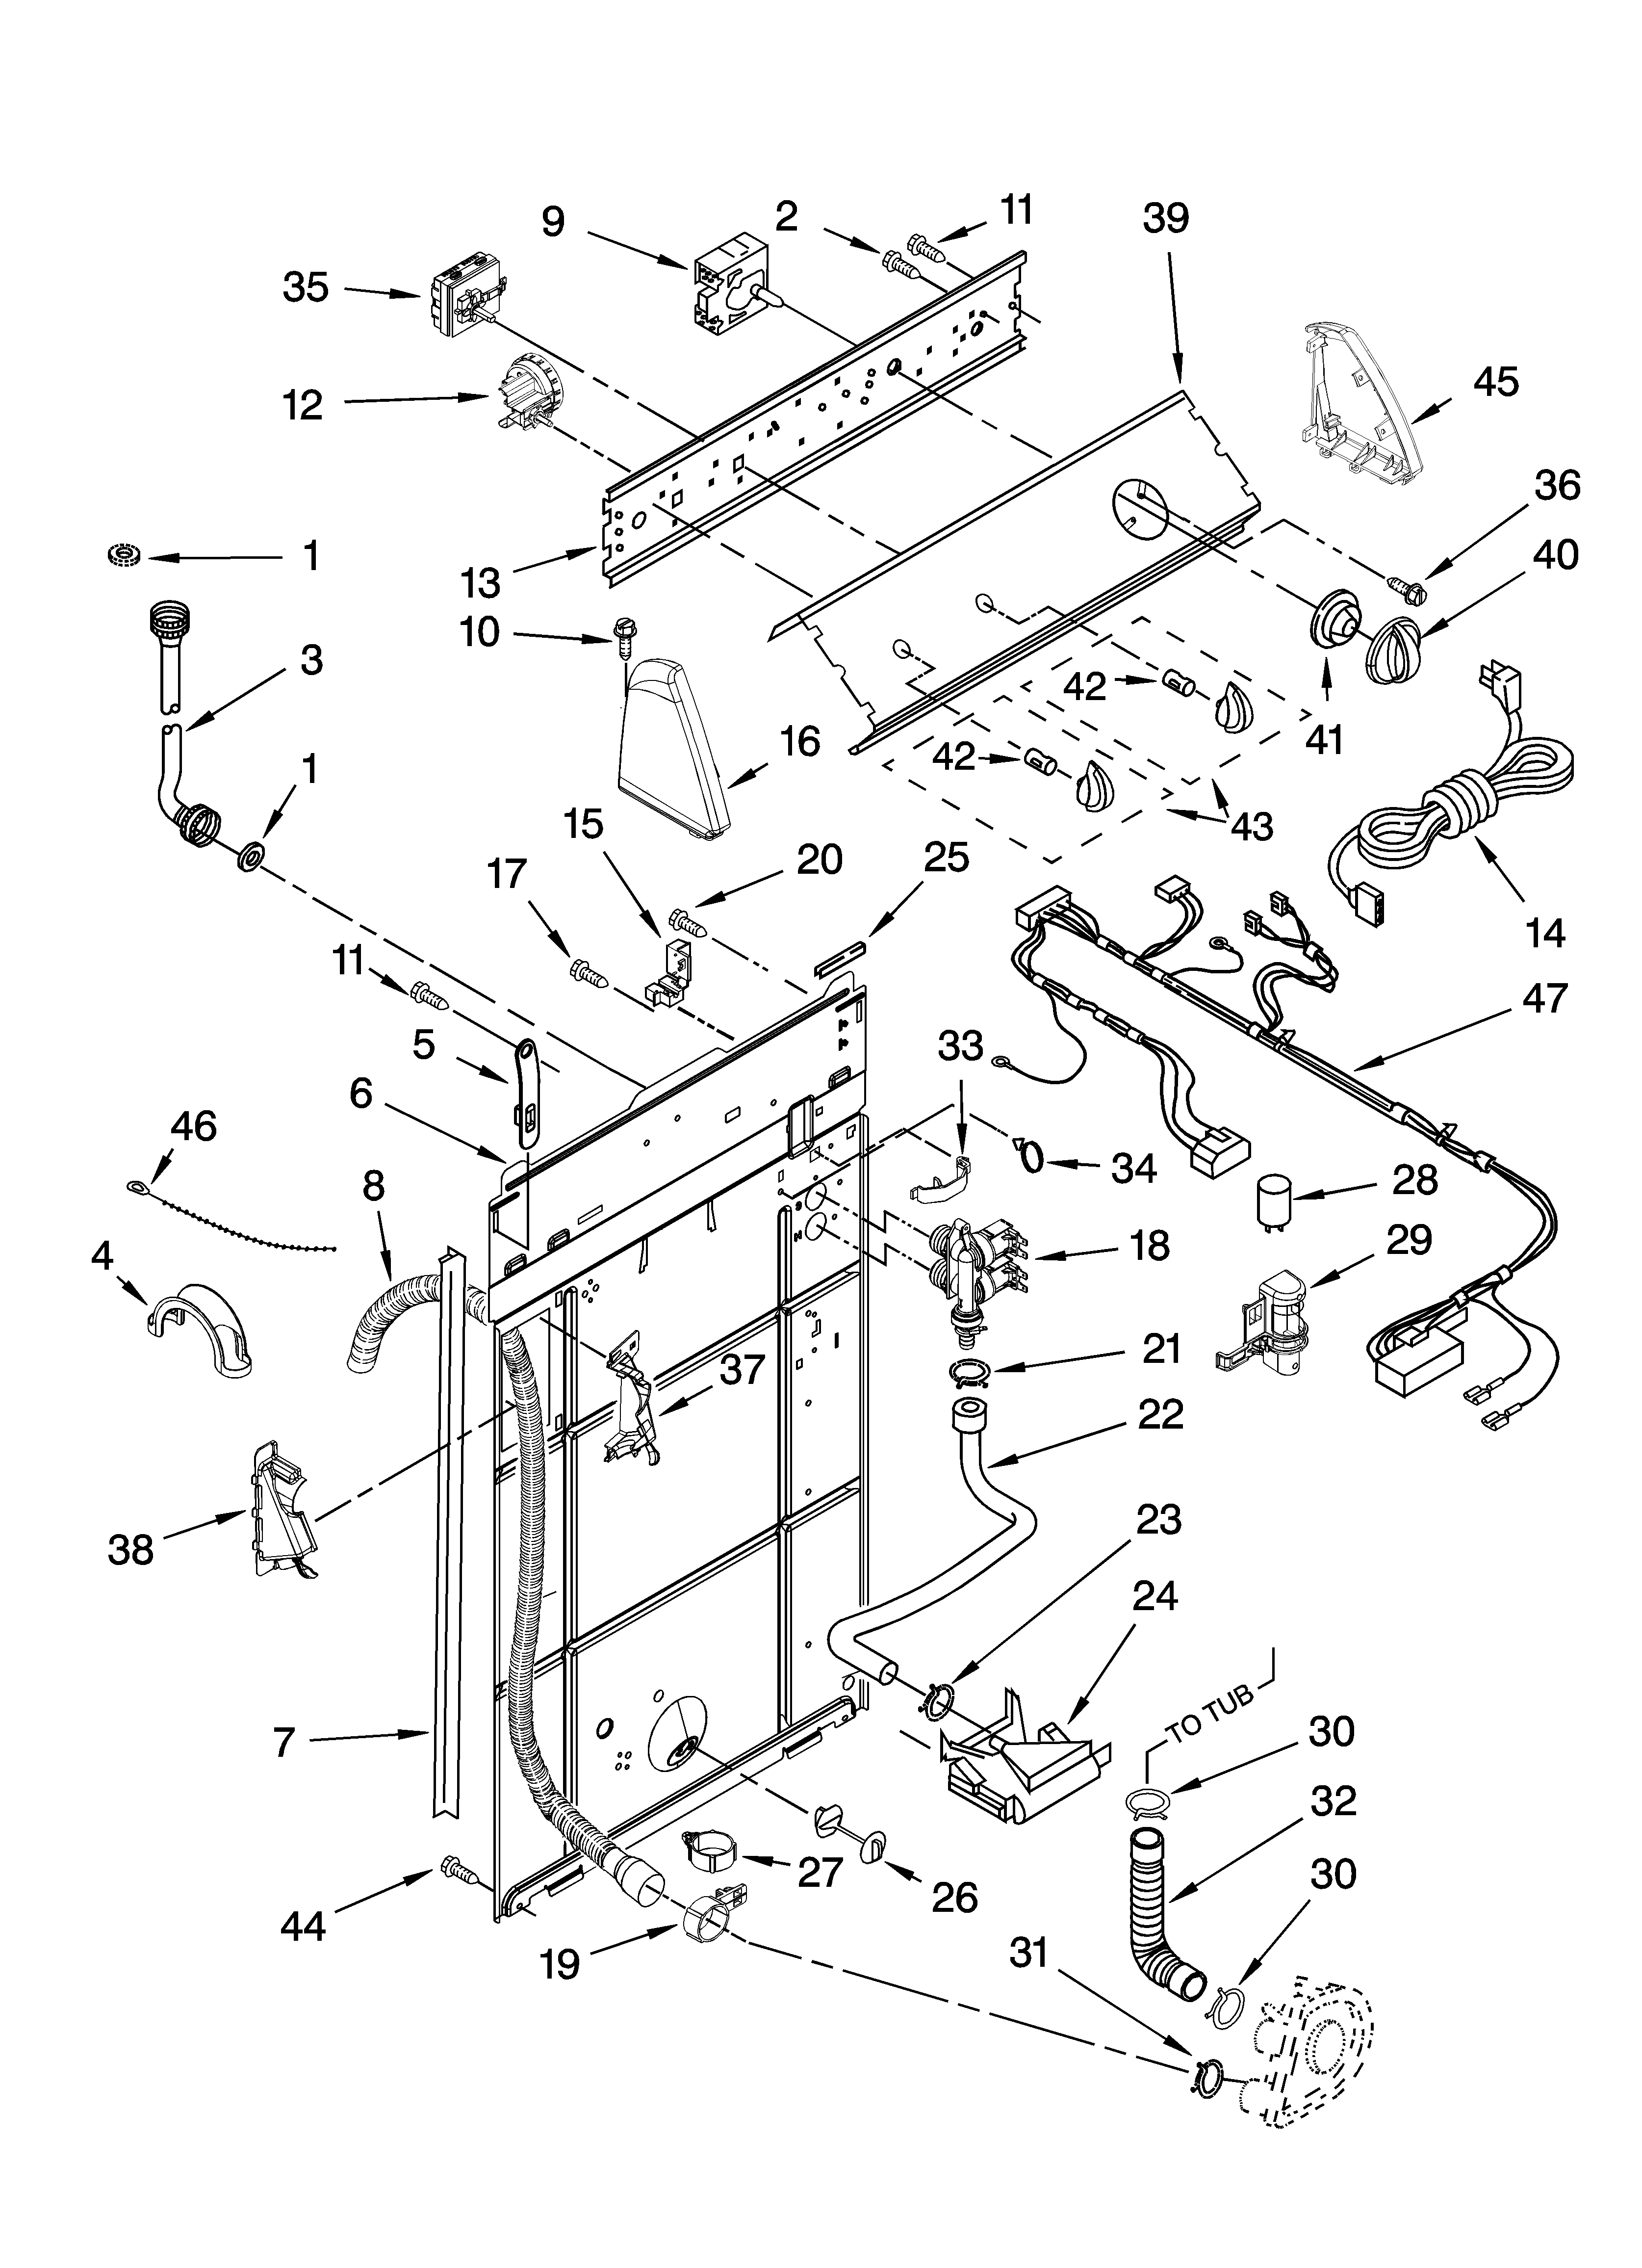 Whirlpool 1CWTW5505SQ0 controls and rear panel parts diagram